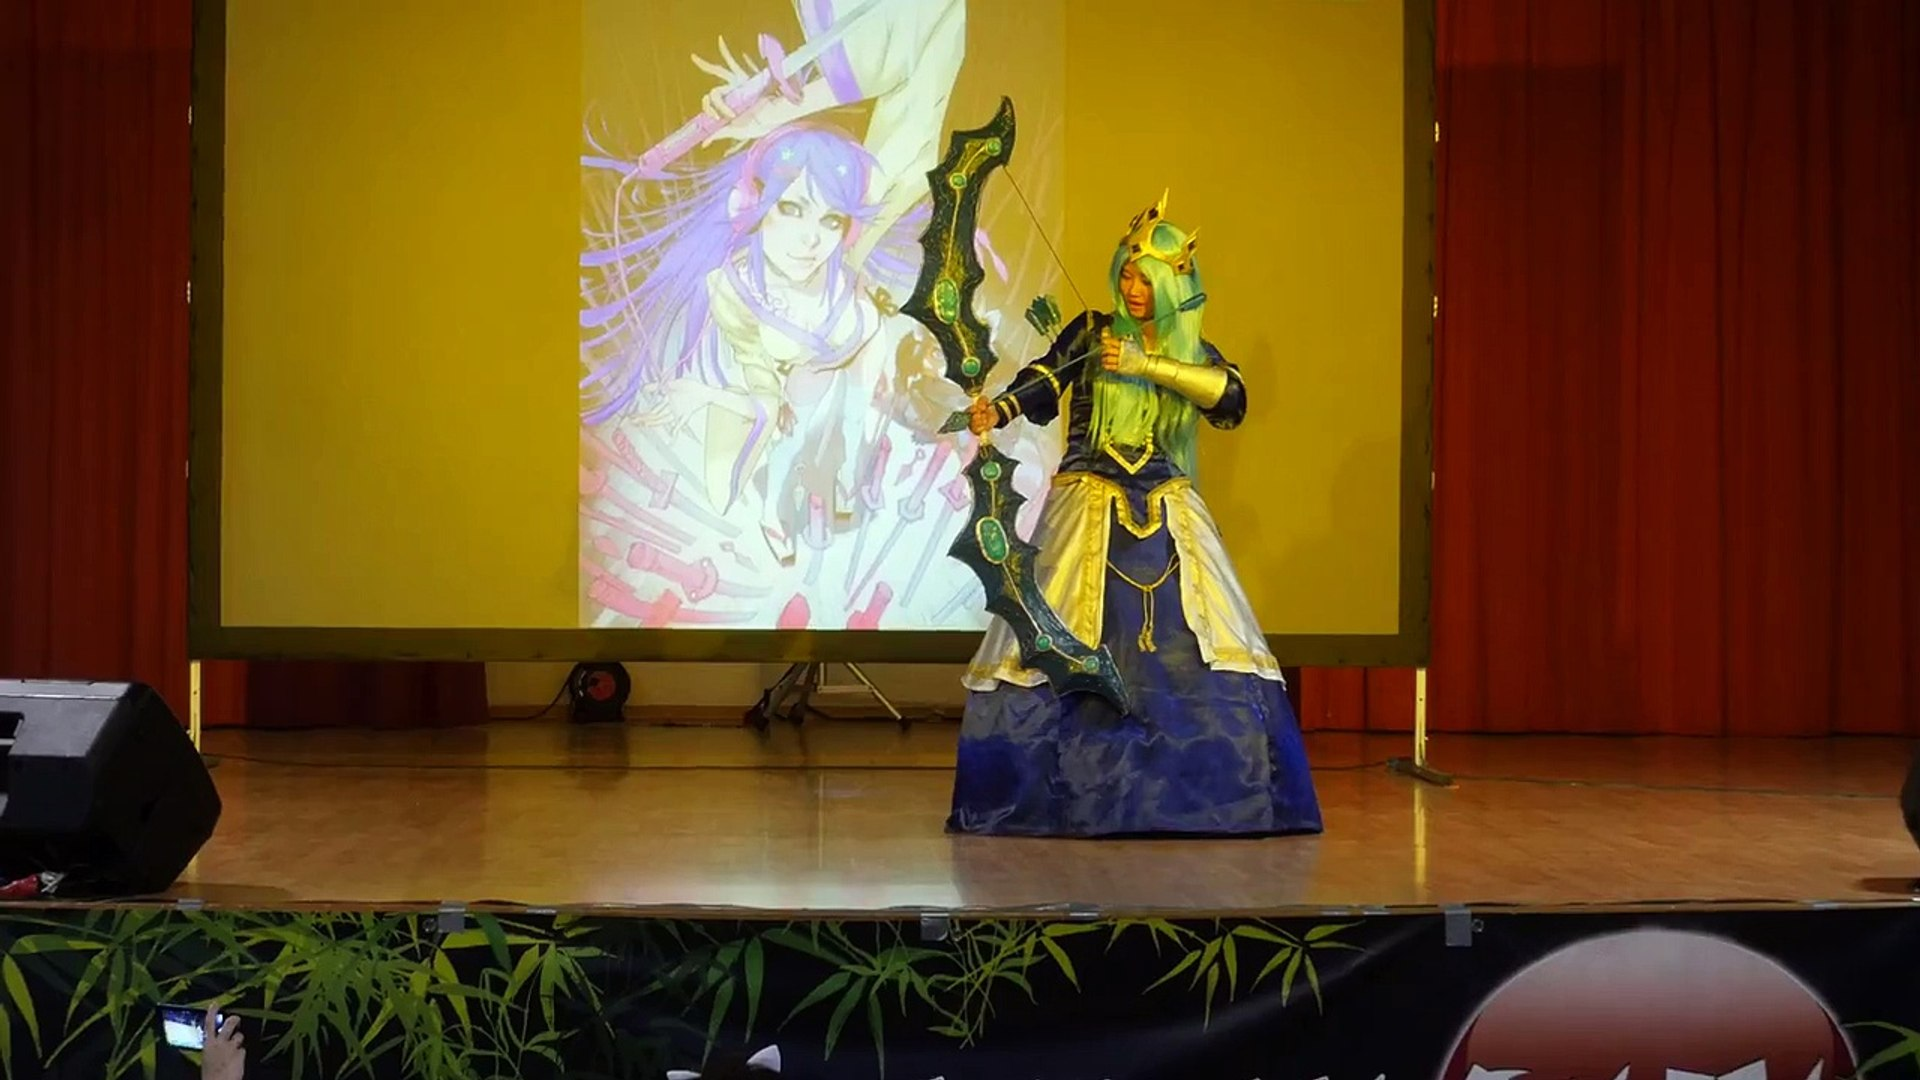 Japan Sun 2015 - Concours Cosplay - 01 - League of Legends - Ashe